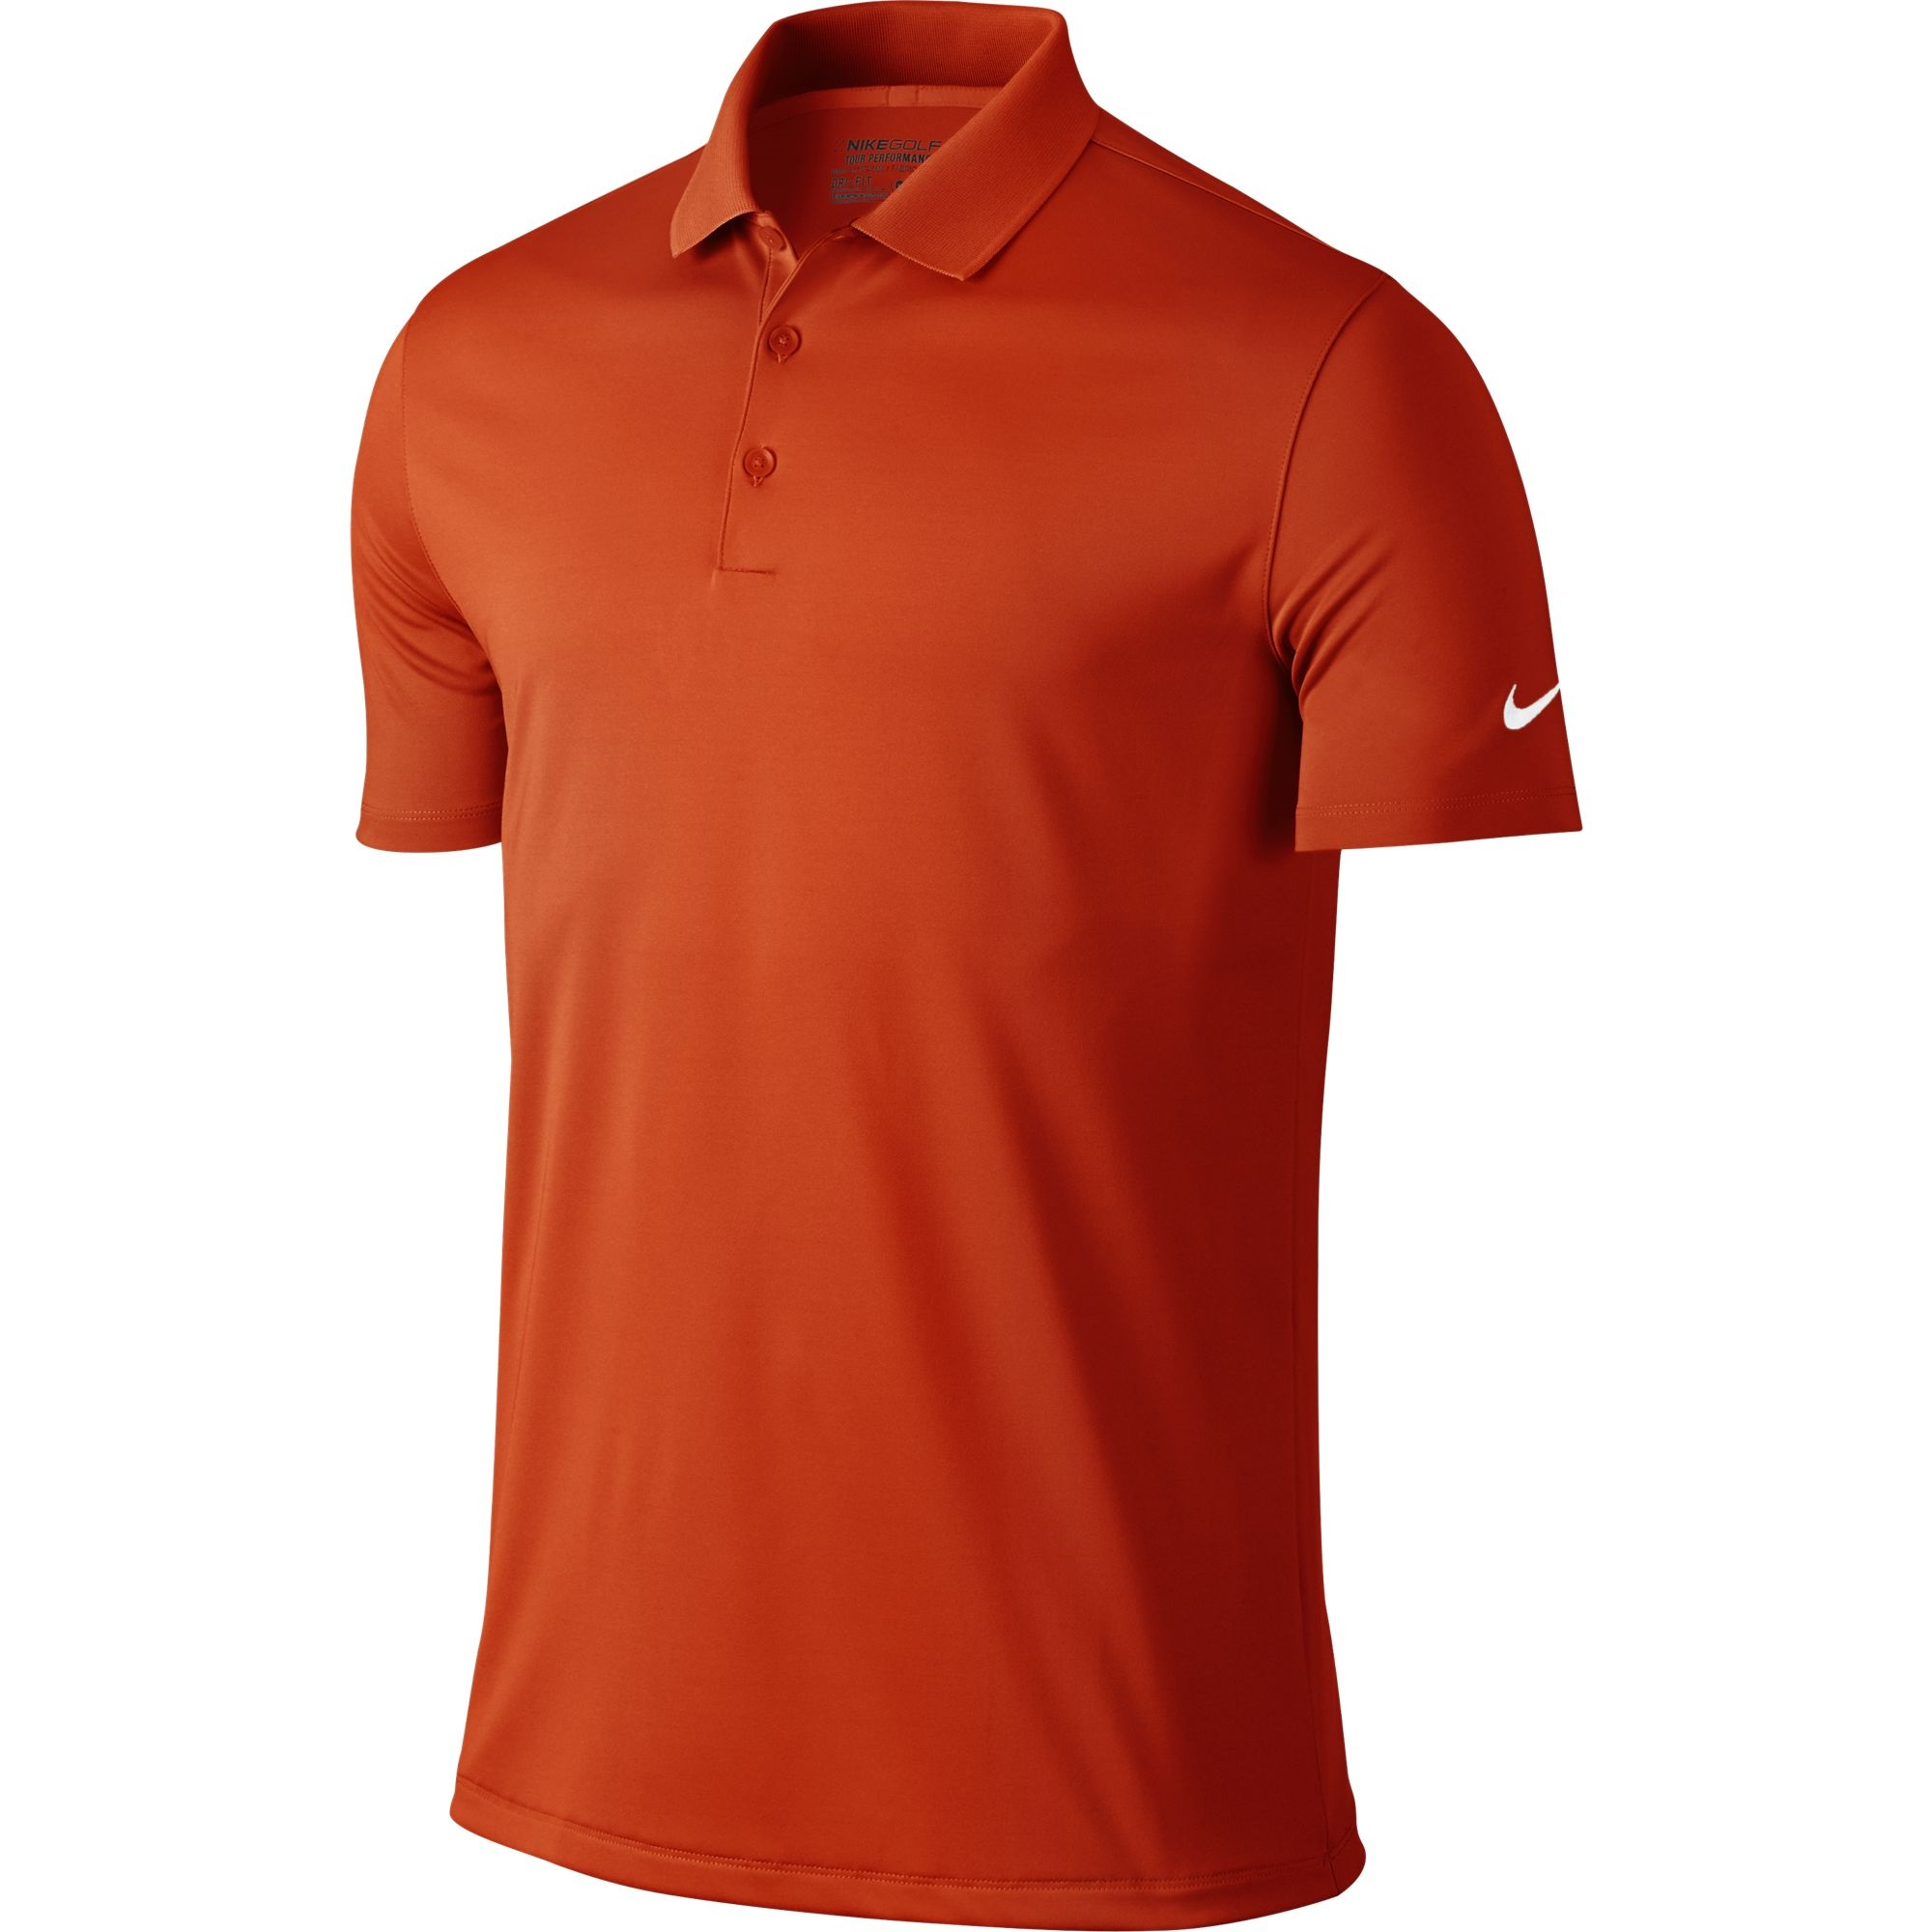 2a2b0718 Details about Nike Golf CLOSEOUT Men's Victory Solid Polo Team Orange/White  725518-891 Was $55